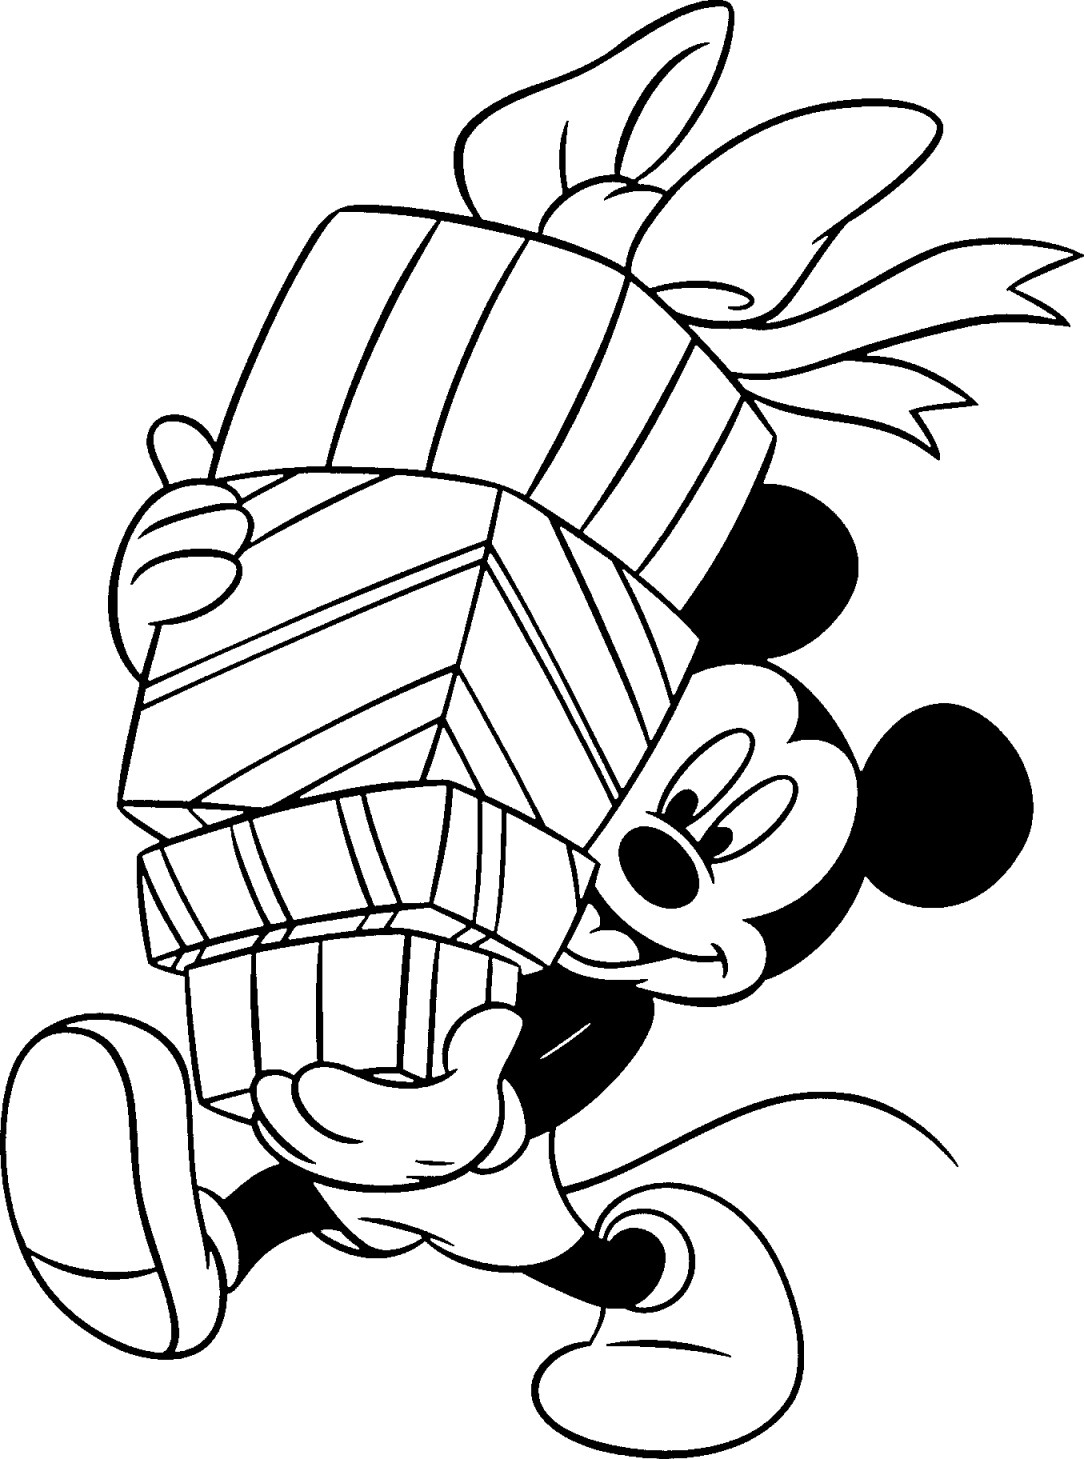 coloring pages for kids mickey mouse free online printable coloring pages how to draw hd videos for mickey coloring pages mouse kids